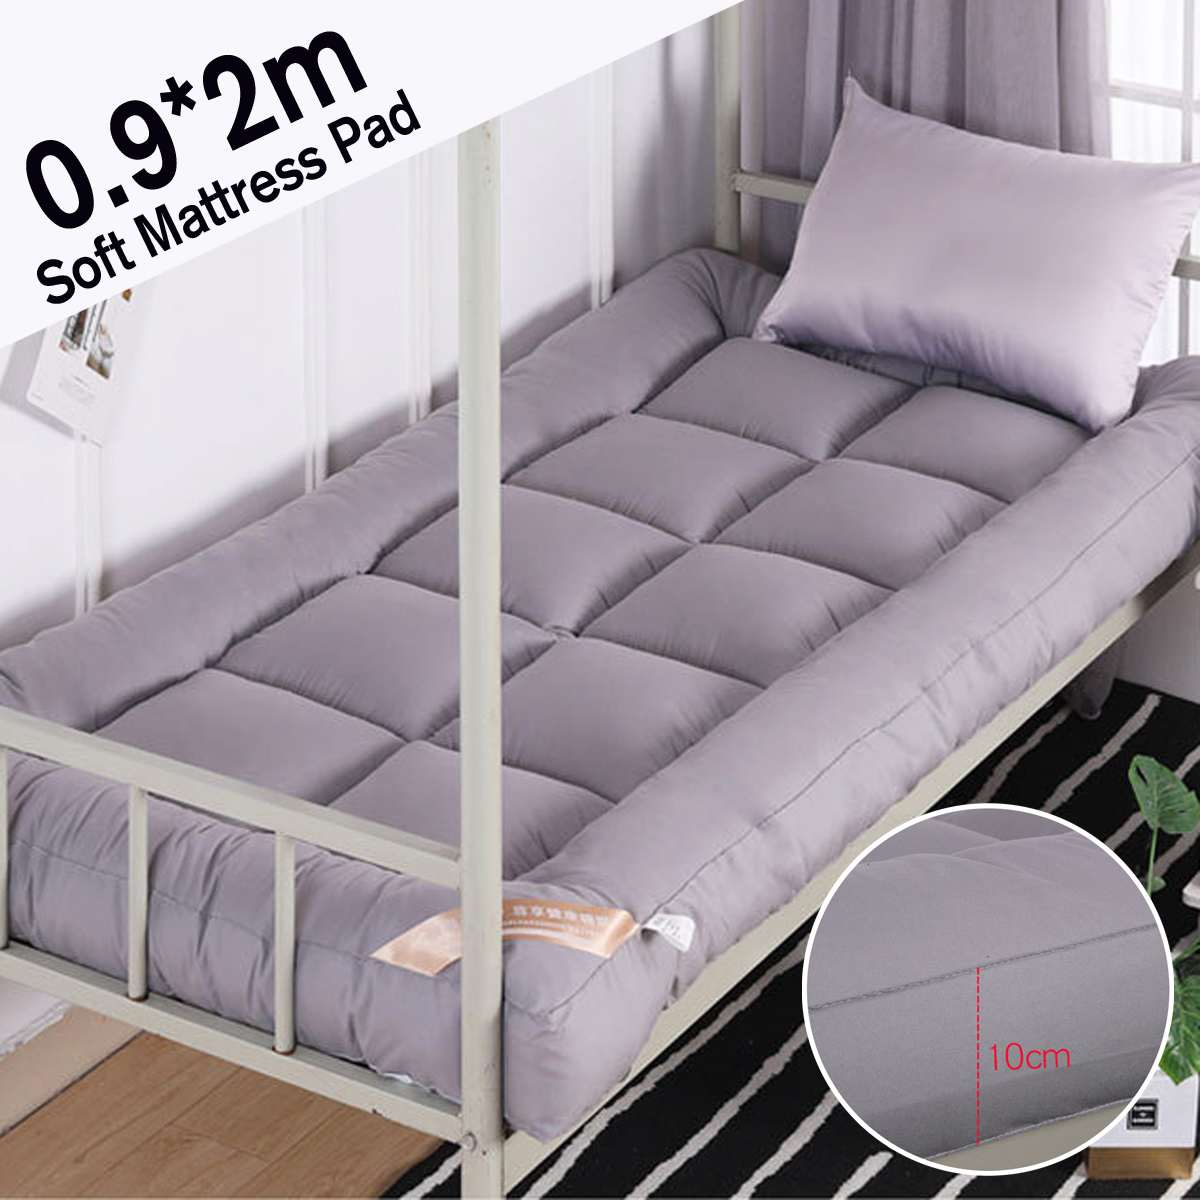 90x200cm Mattress Ergonomic 10cm Thickness Foldable student dormitory Mattresses Cotton Cover Tatami Single Bed Size